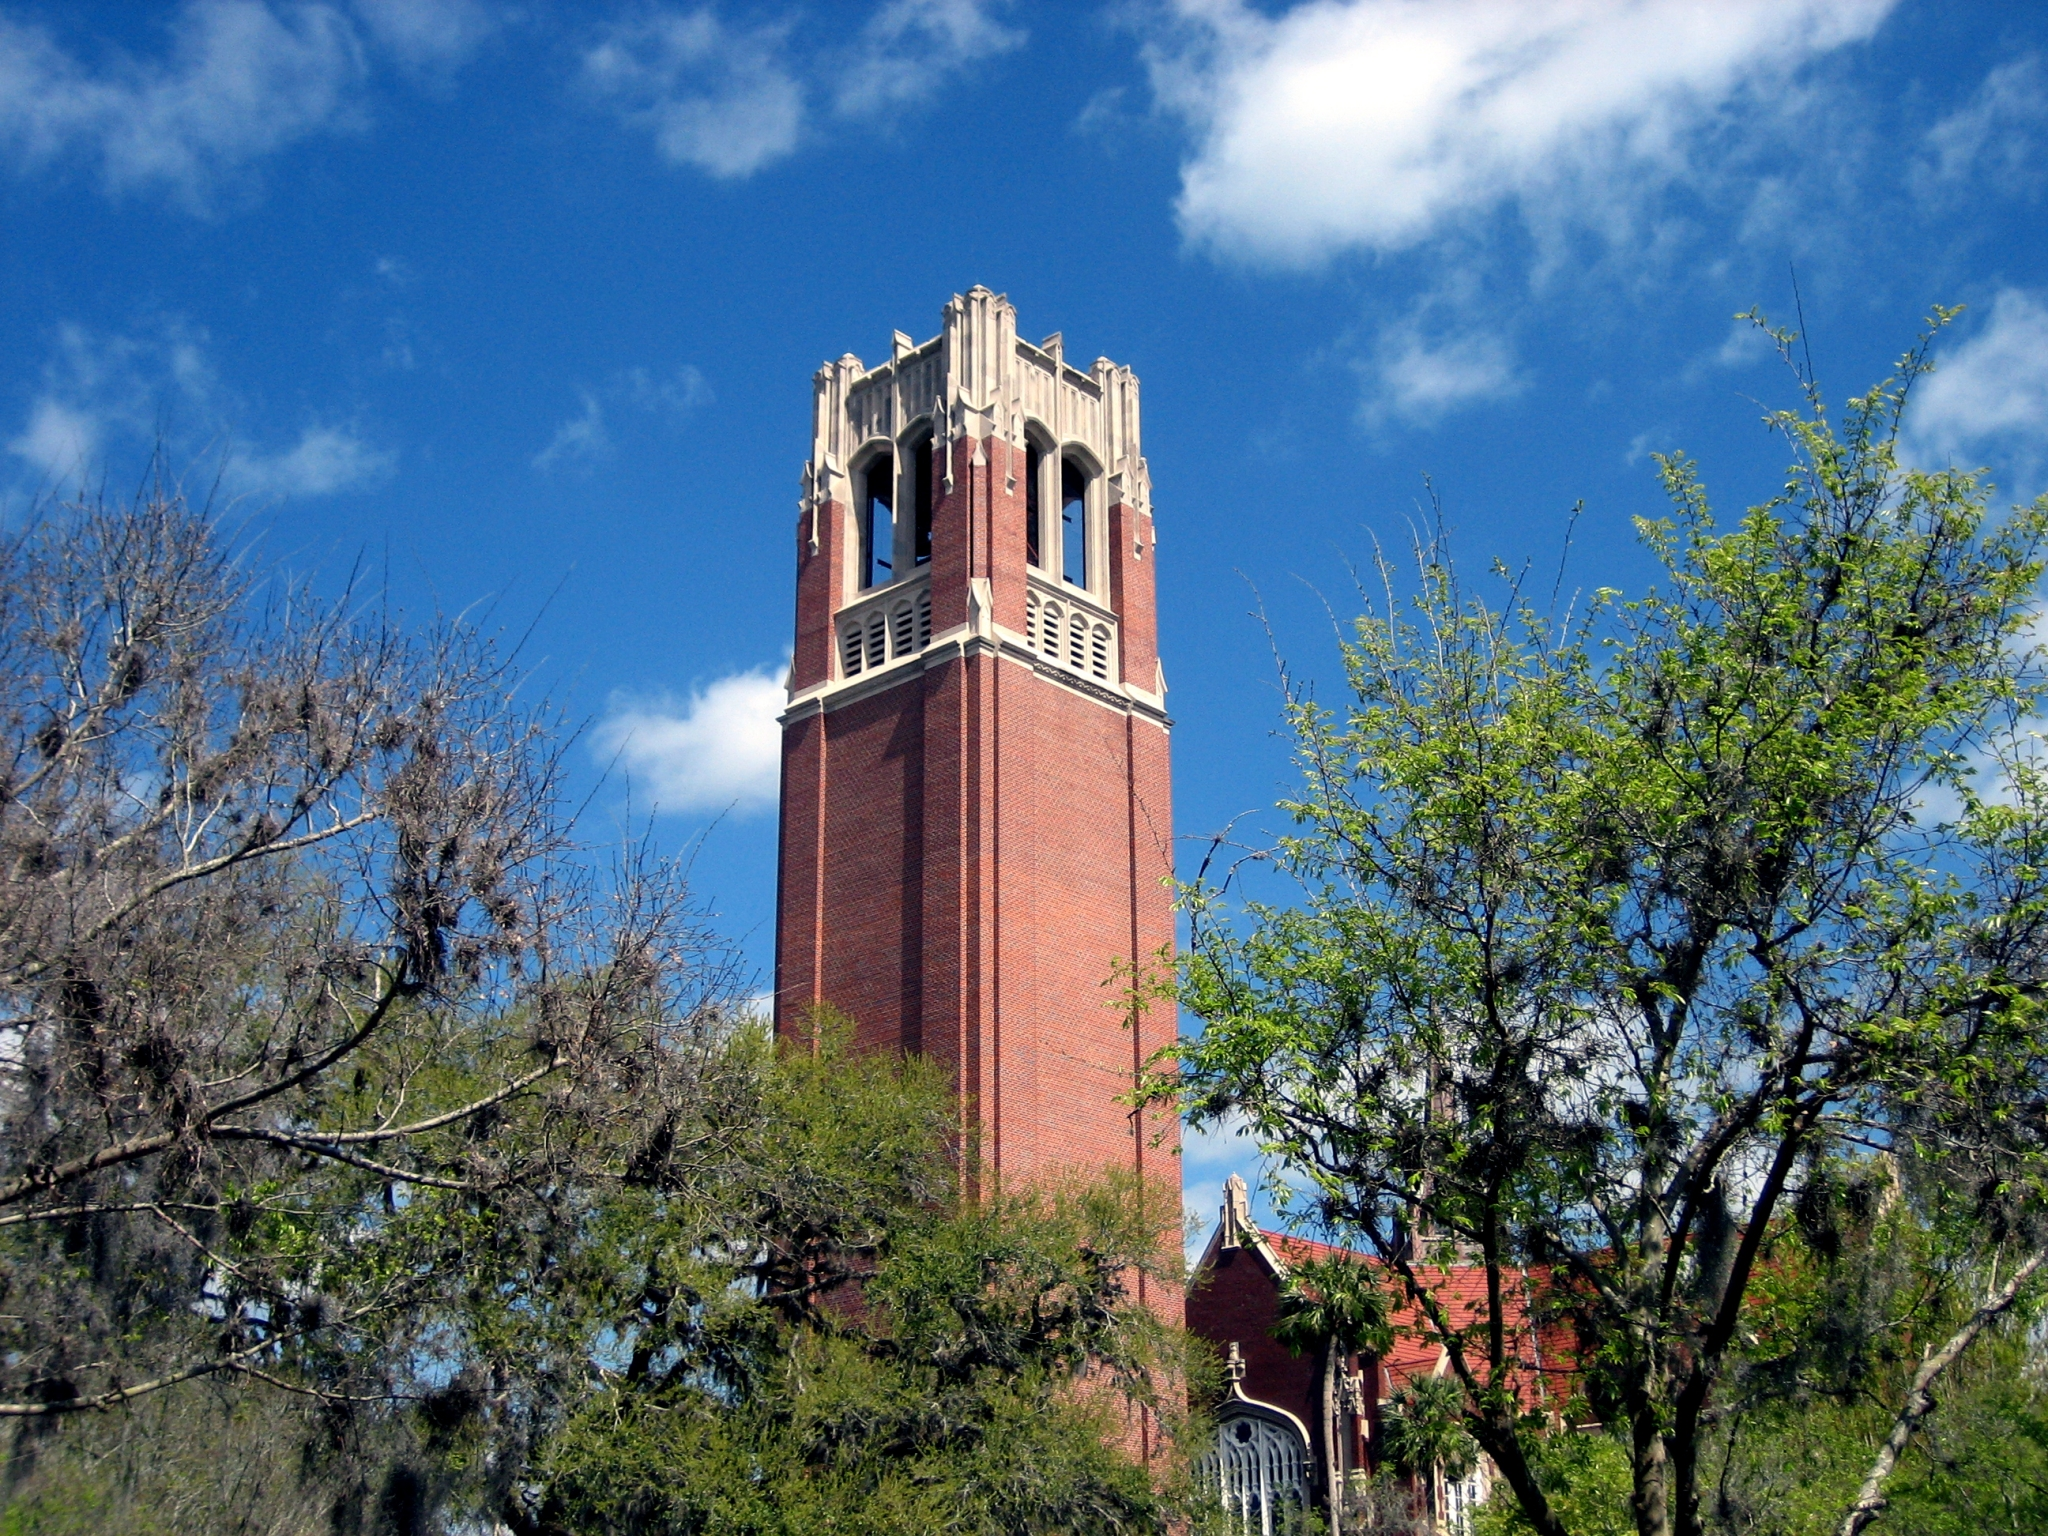 university of florida survival tower